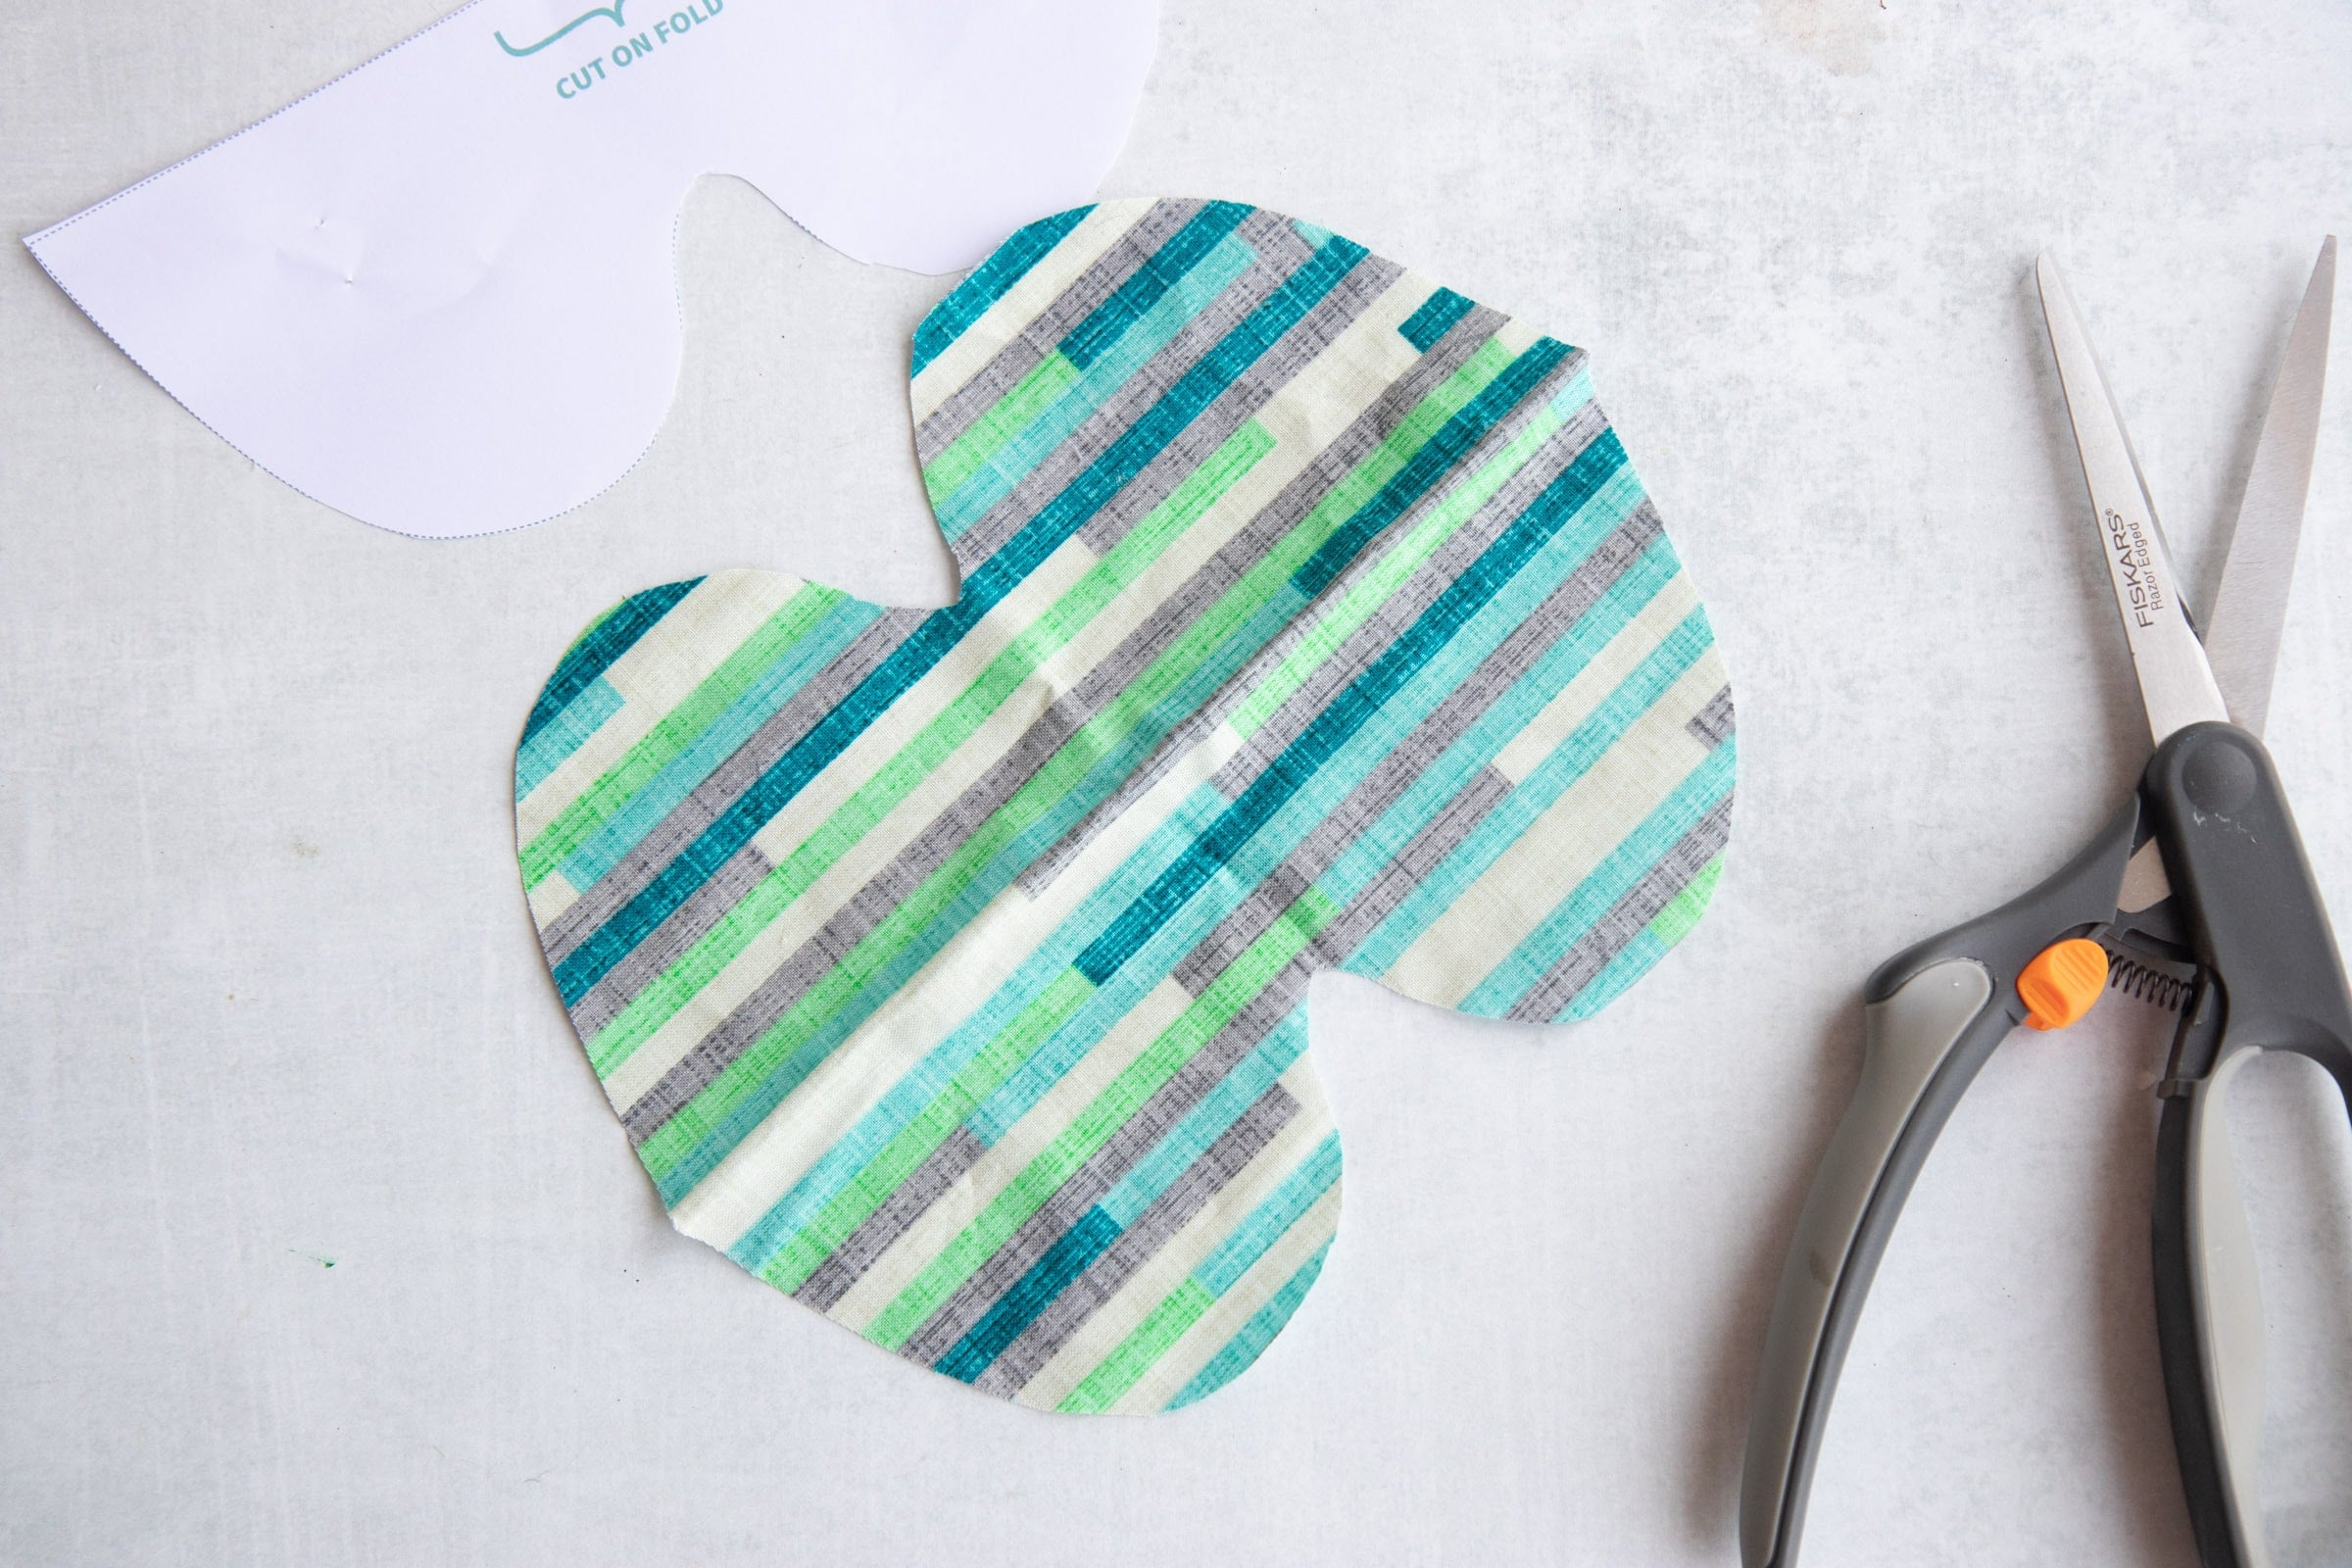 Piece of fabric cut for Soothing Headache Eye Masks and unfolded